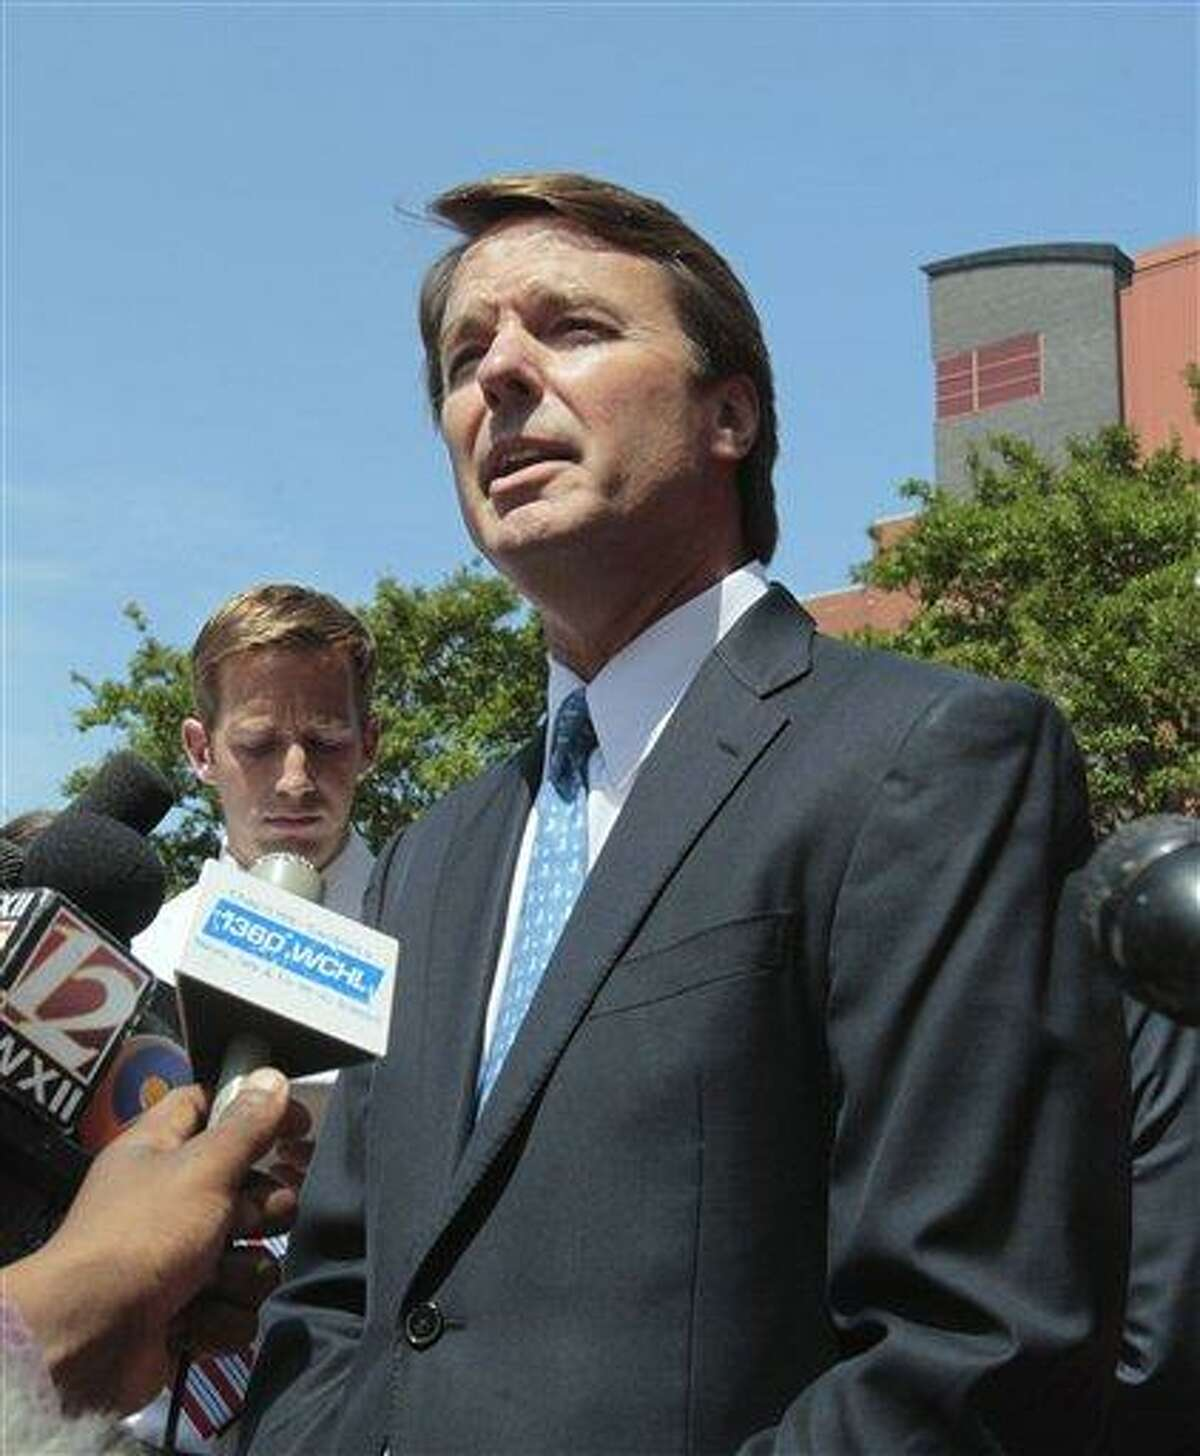 FILE - In this June 3, 2011 file photo, former presidential candidate John Edwards outside federal court appearance in Winston-Salem, N.C. Prosecutors have obtained emails between John Edwards and a former aide to use as evidence at trial that he knew about payments to his pregnant mistress even while he was publicly denying it, people familiar with the case told The Associated Press on Monday. (AP Photo/Gerry Broome, File)